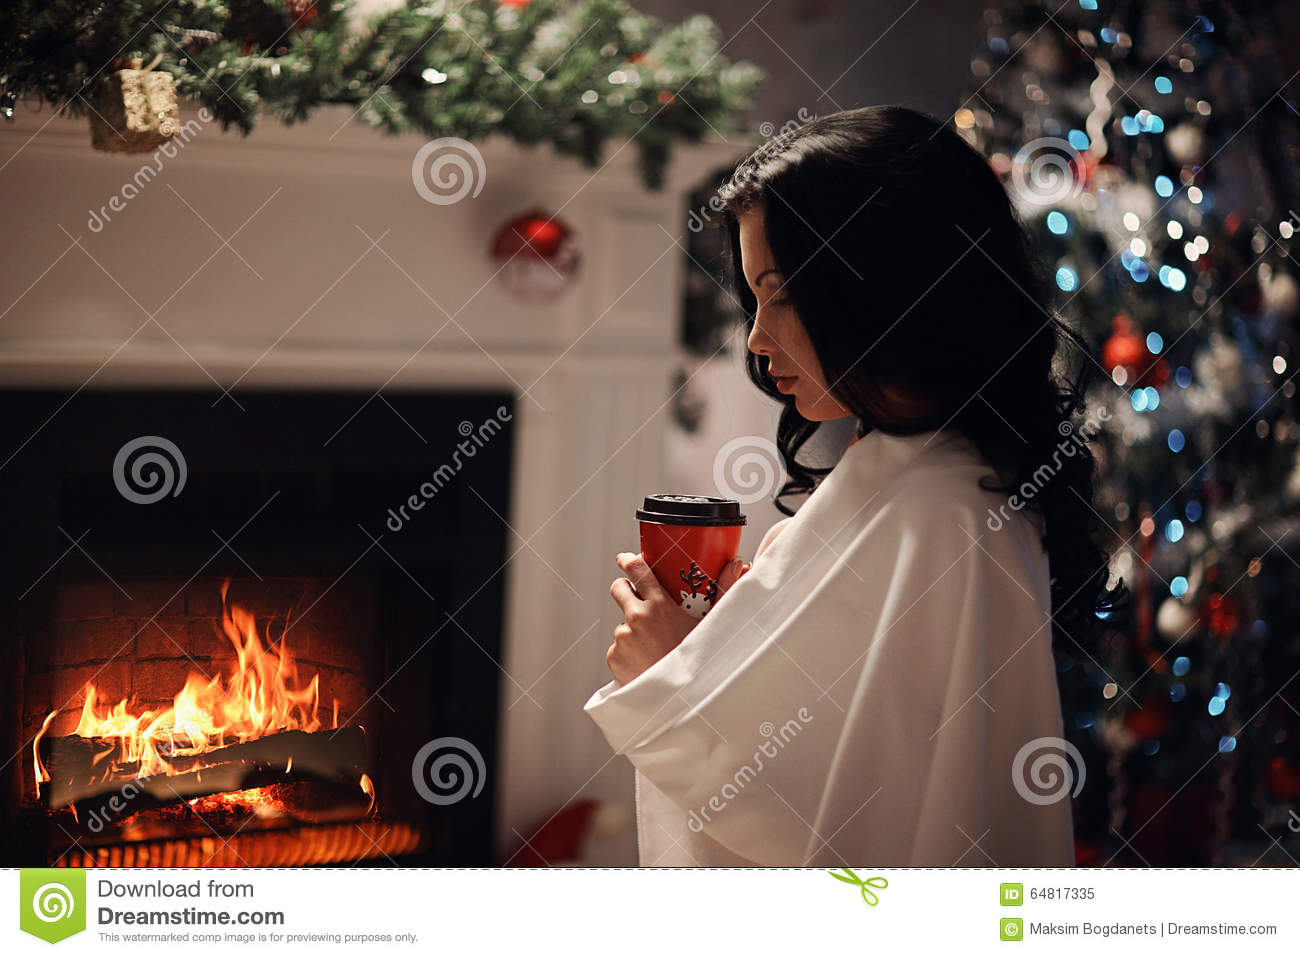 Beauty woman, perfect smile resting on the floor at home with a fireplace